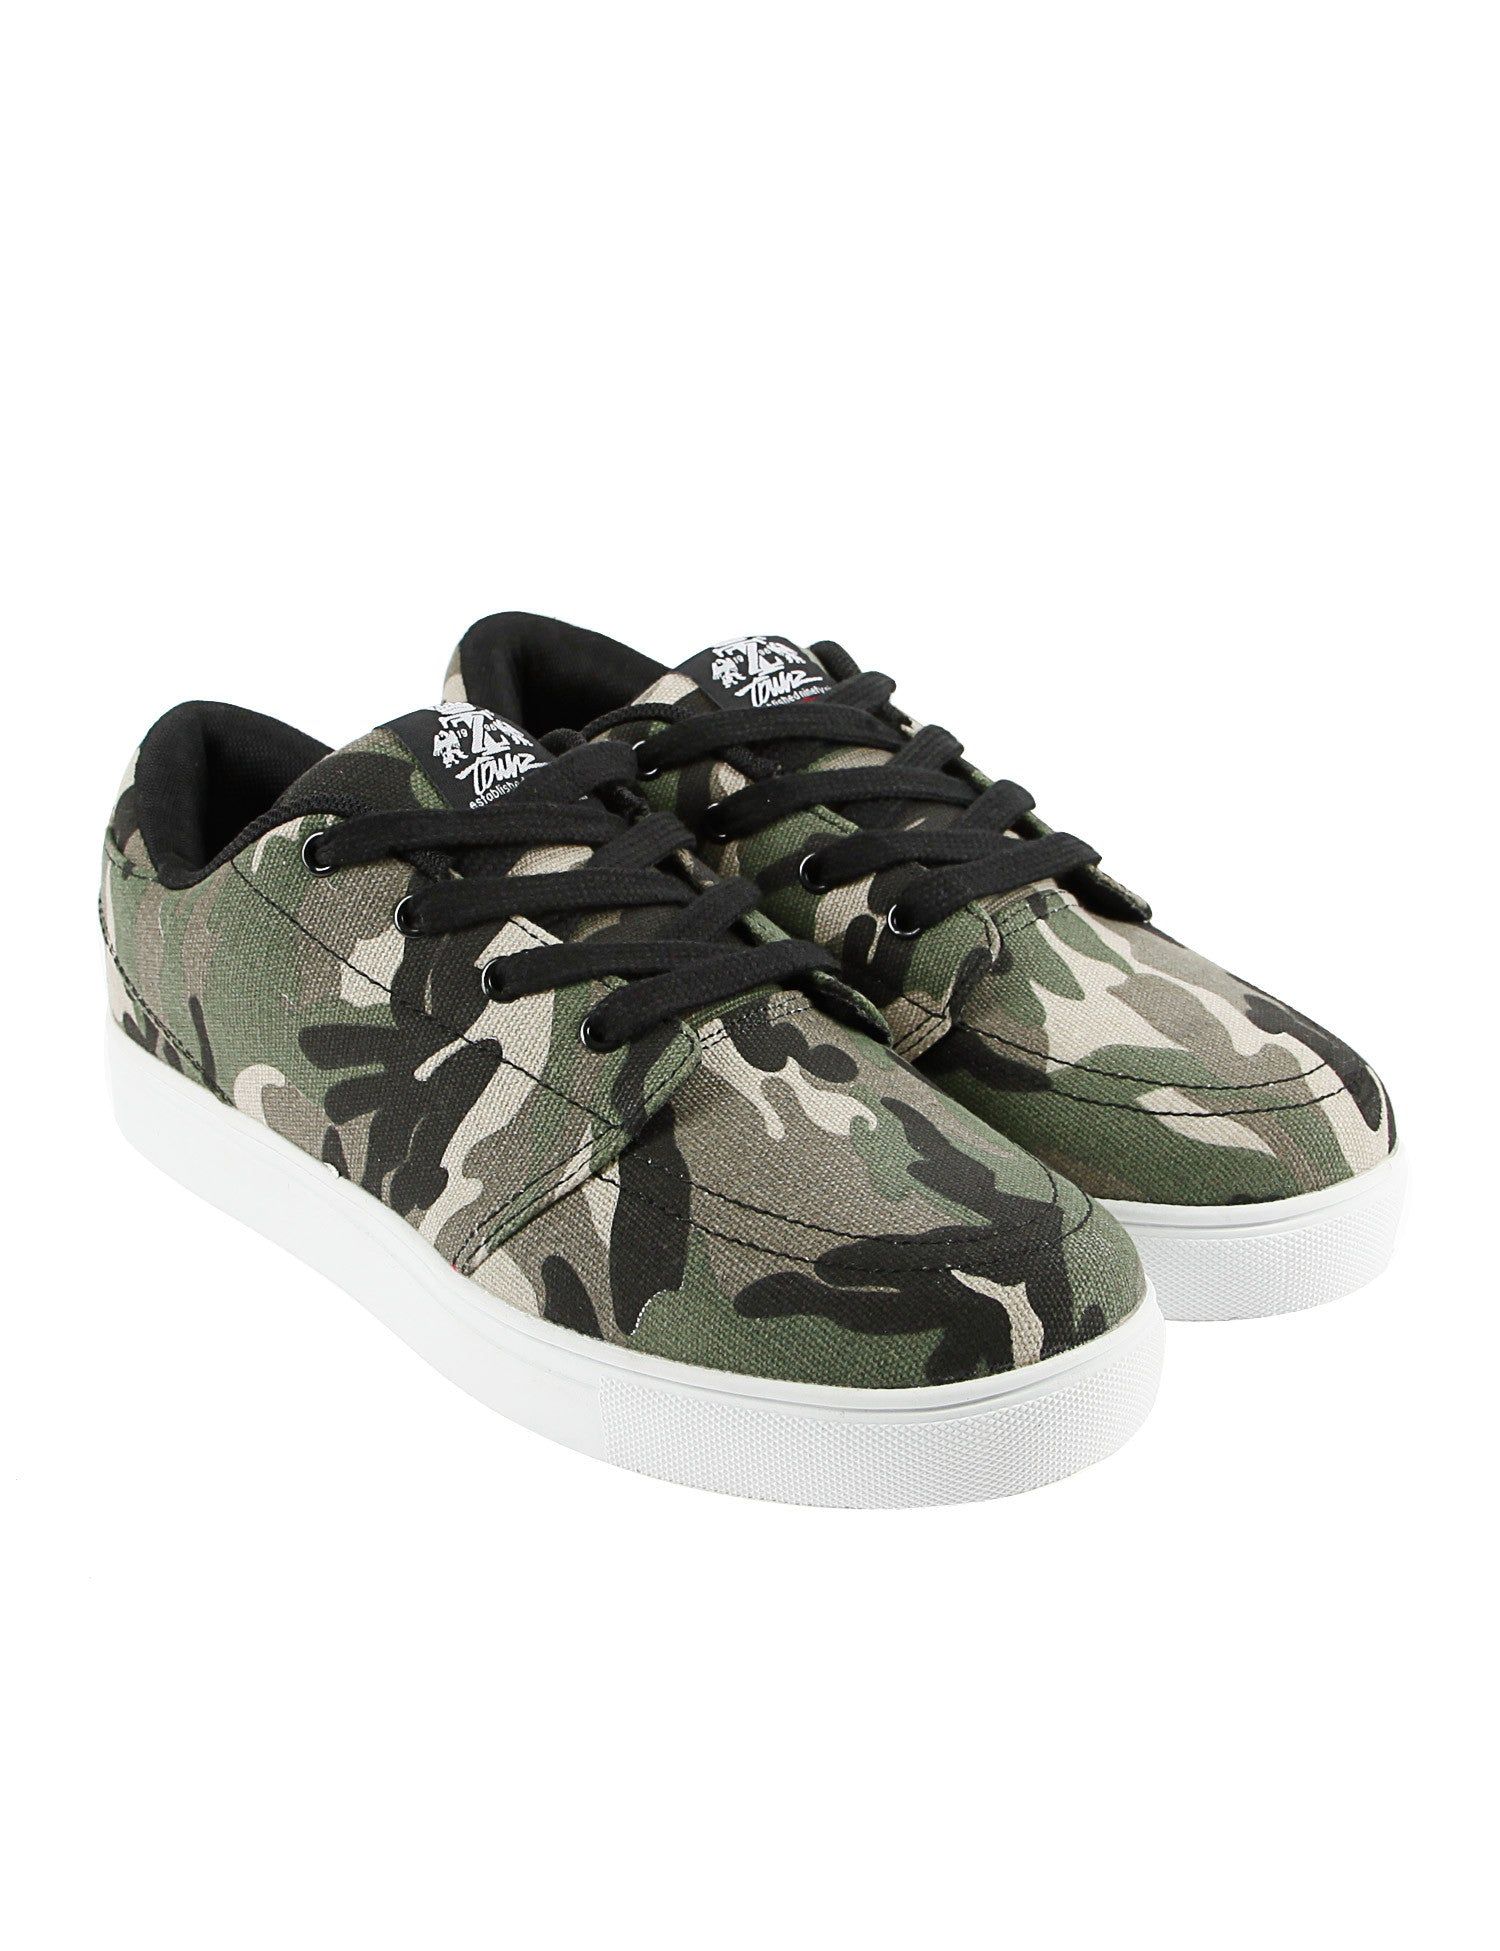 Townz Shoes A779 Camo